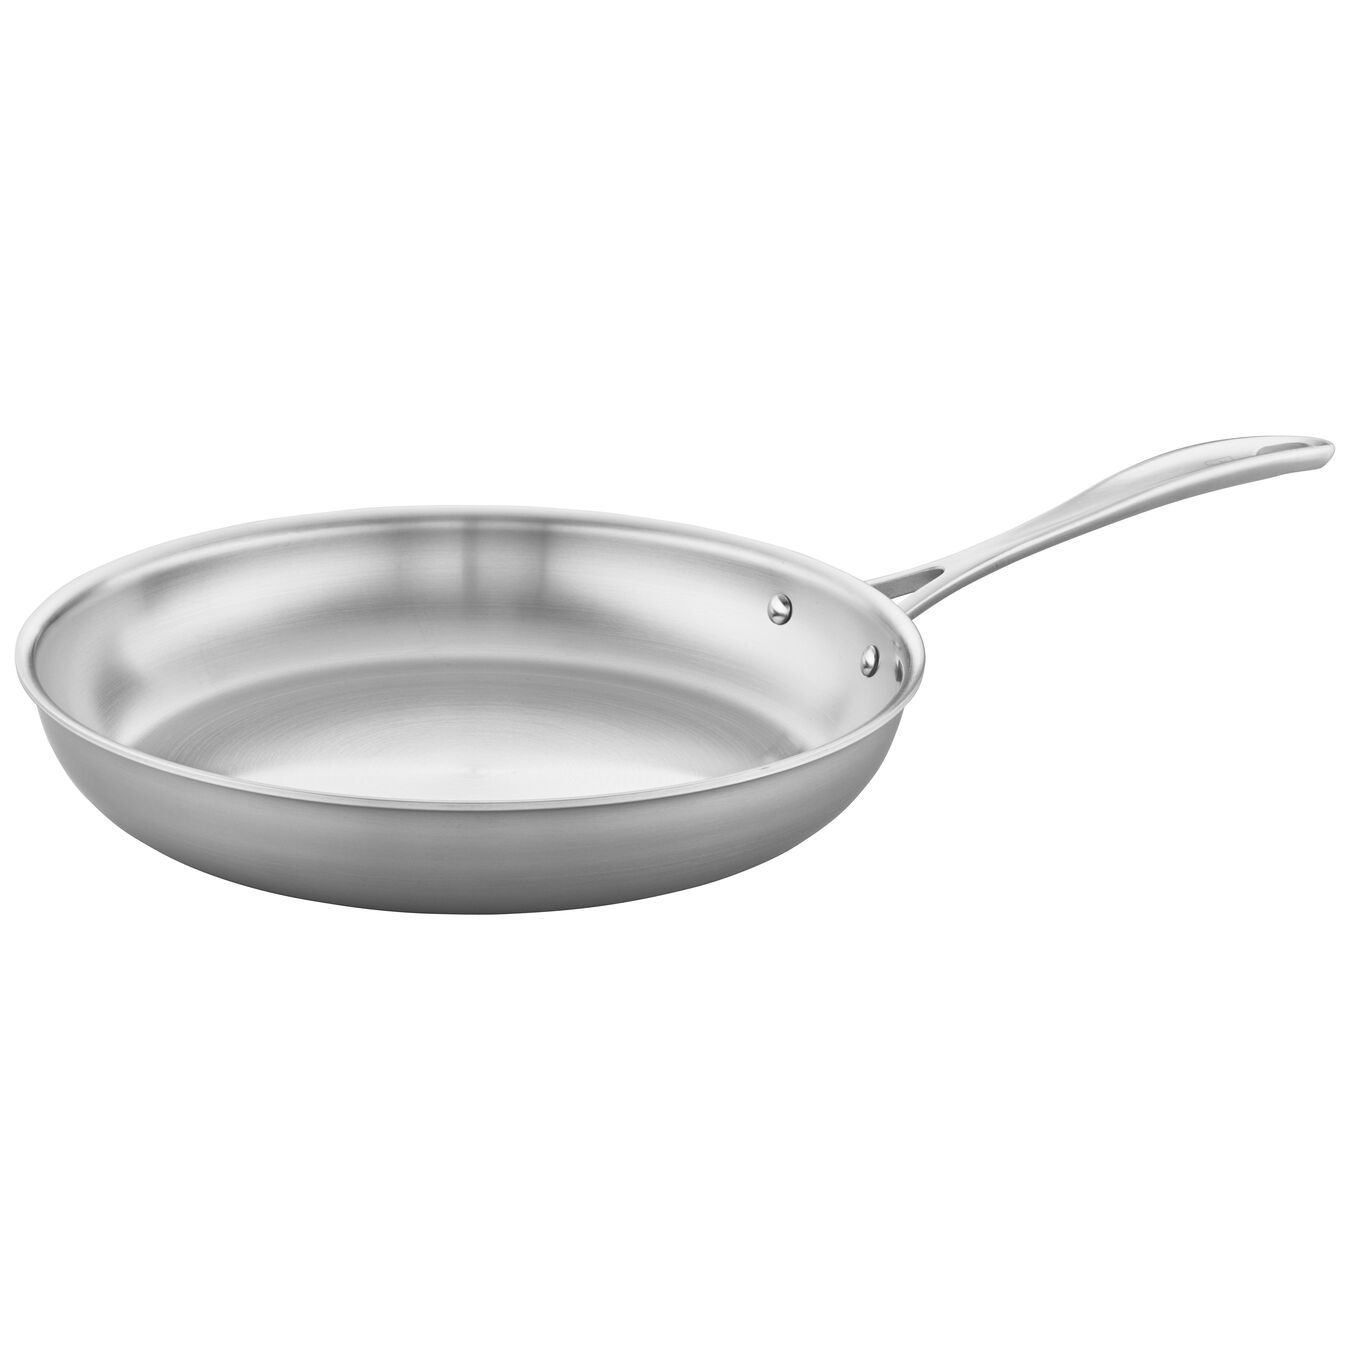 12-inch, 18/10 Stainless Steel, Frying pan,,large 1